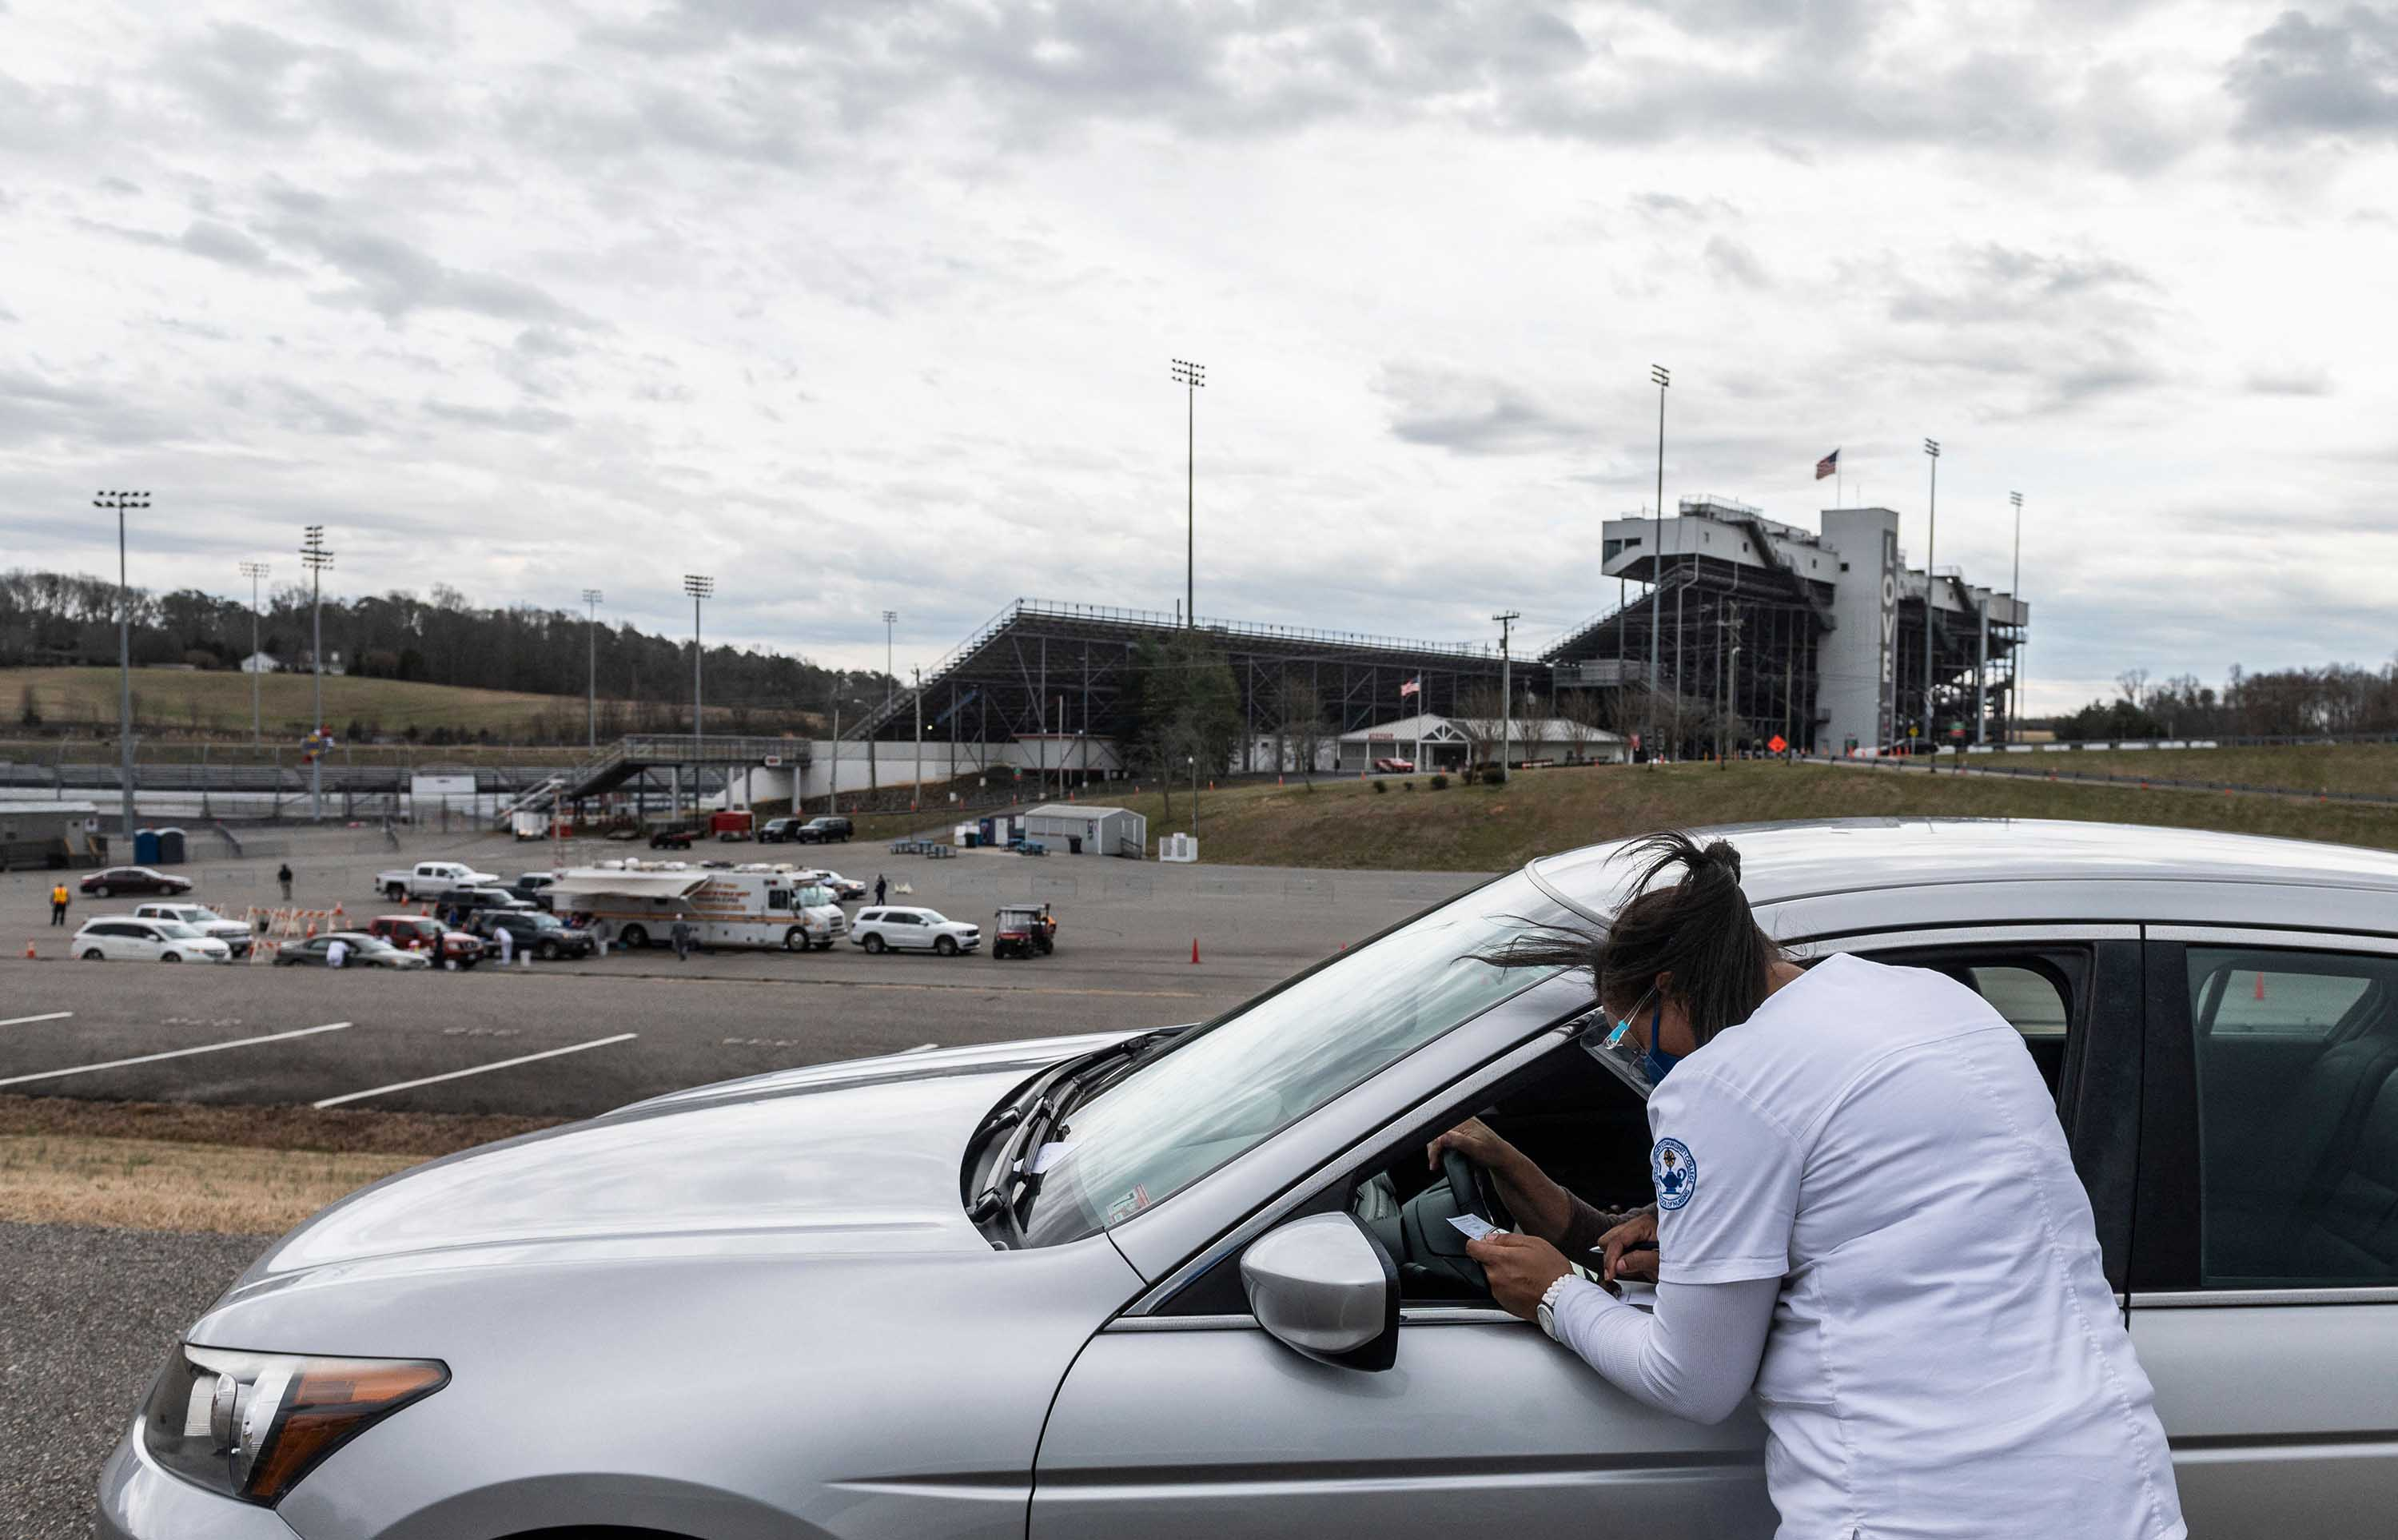 A nurse speaks to a vaccine recipient at the Martinsville speedway Covid-19 vaccination site in place for residents in the rural area around Ridgeway, Virginia, on March 12.